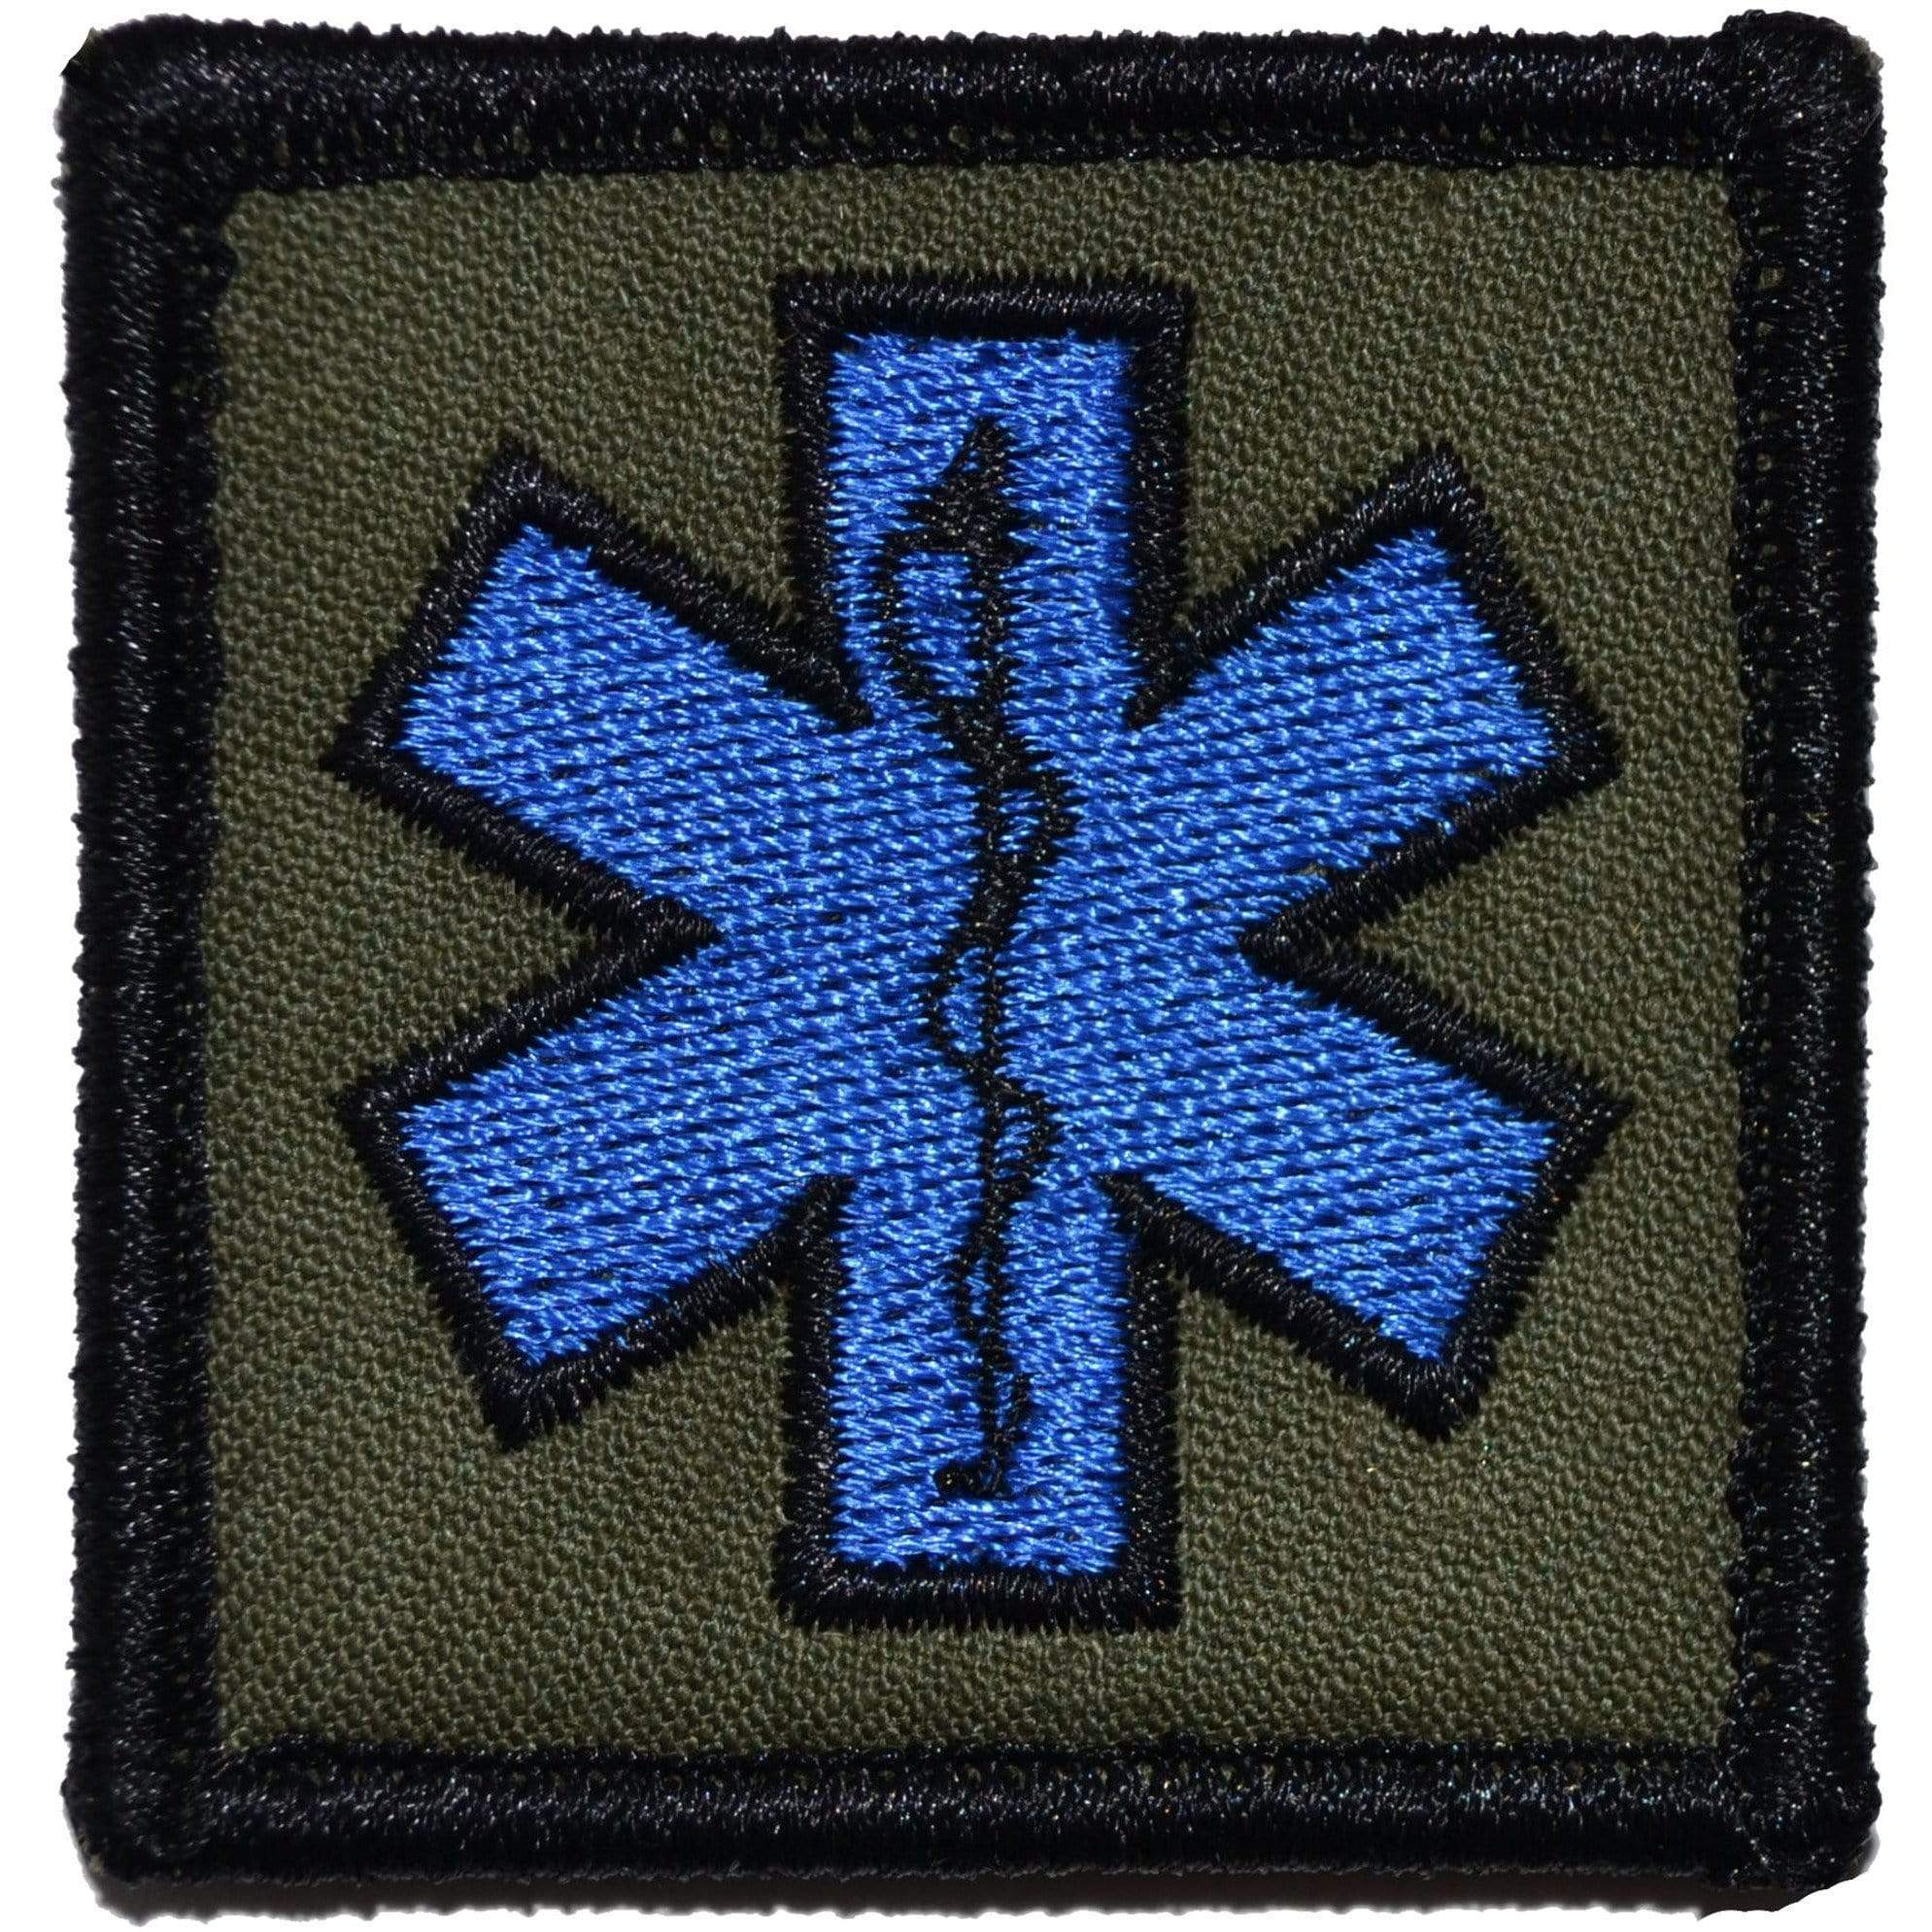 Tactical Gear Junkie Patches Olive Drab EMT Star of Life Caduceus - 2x2 Patch